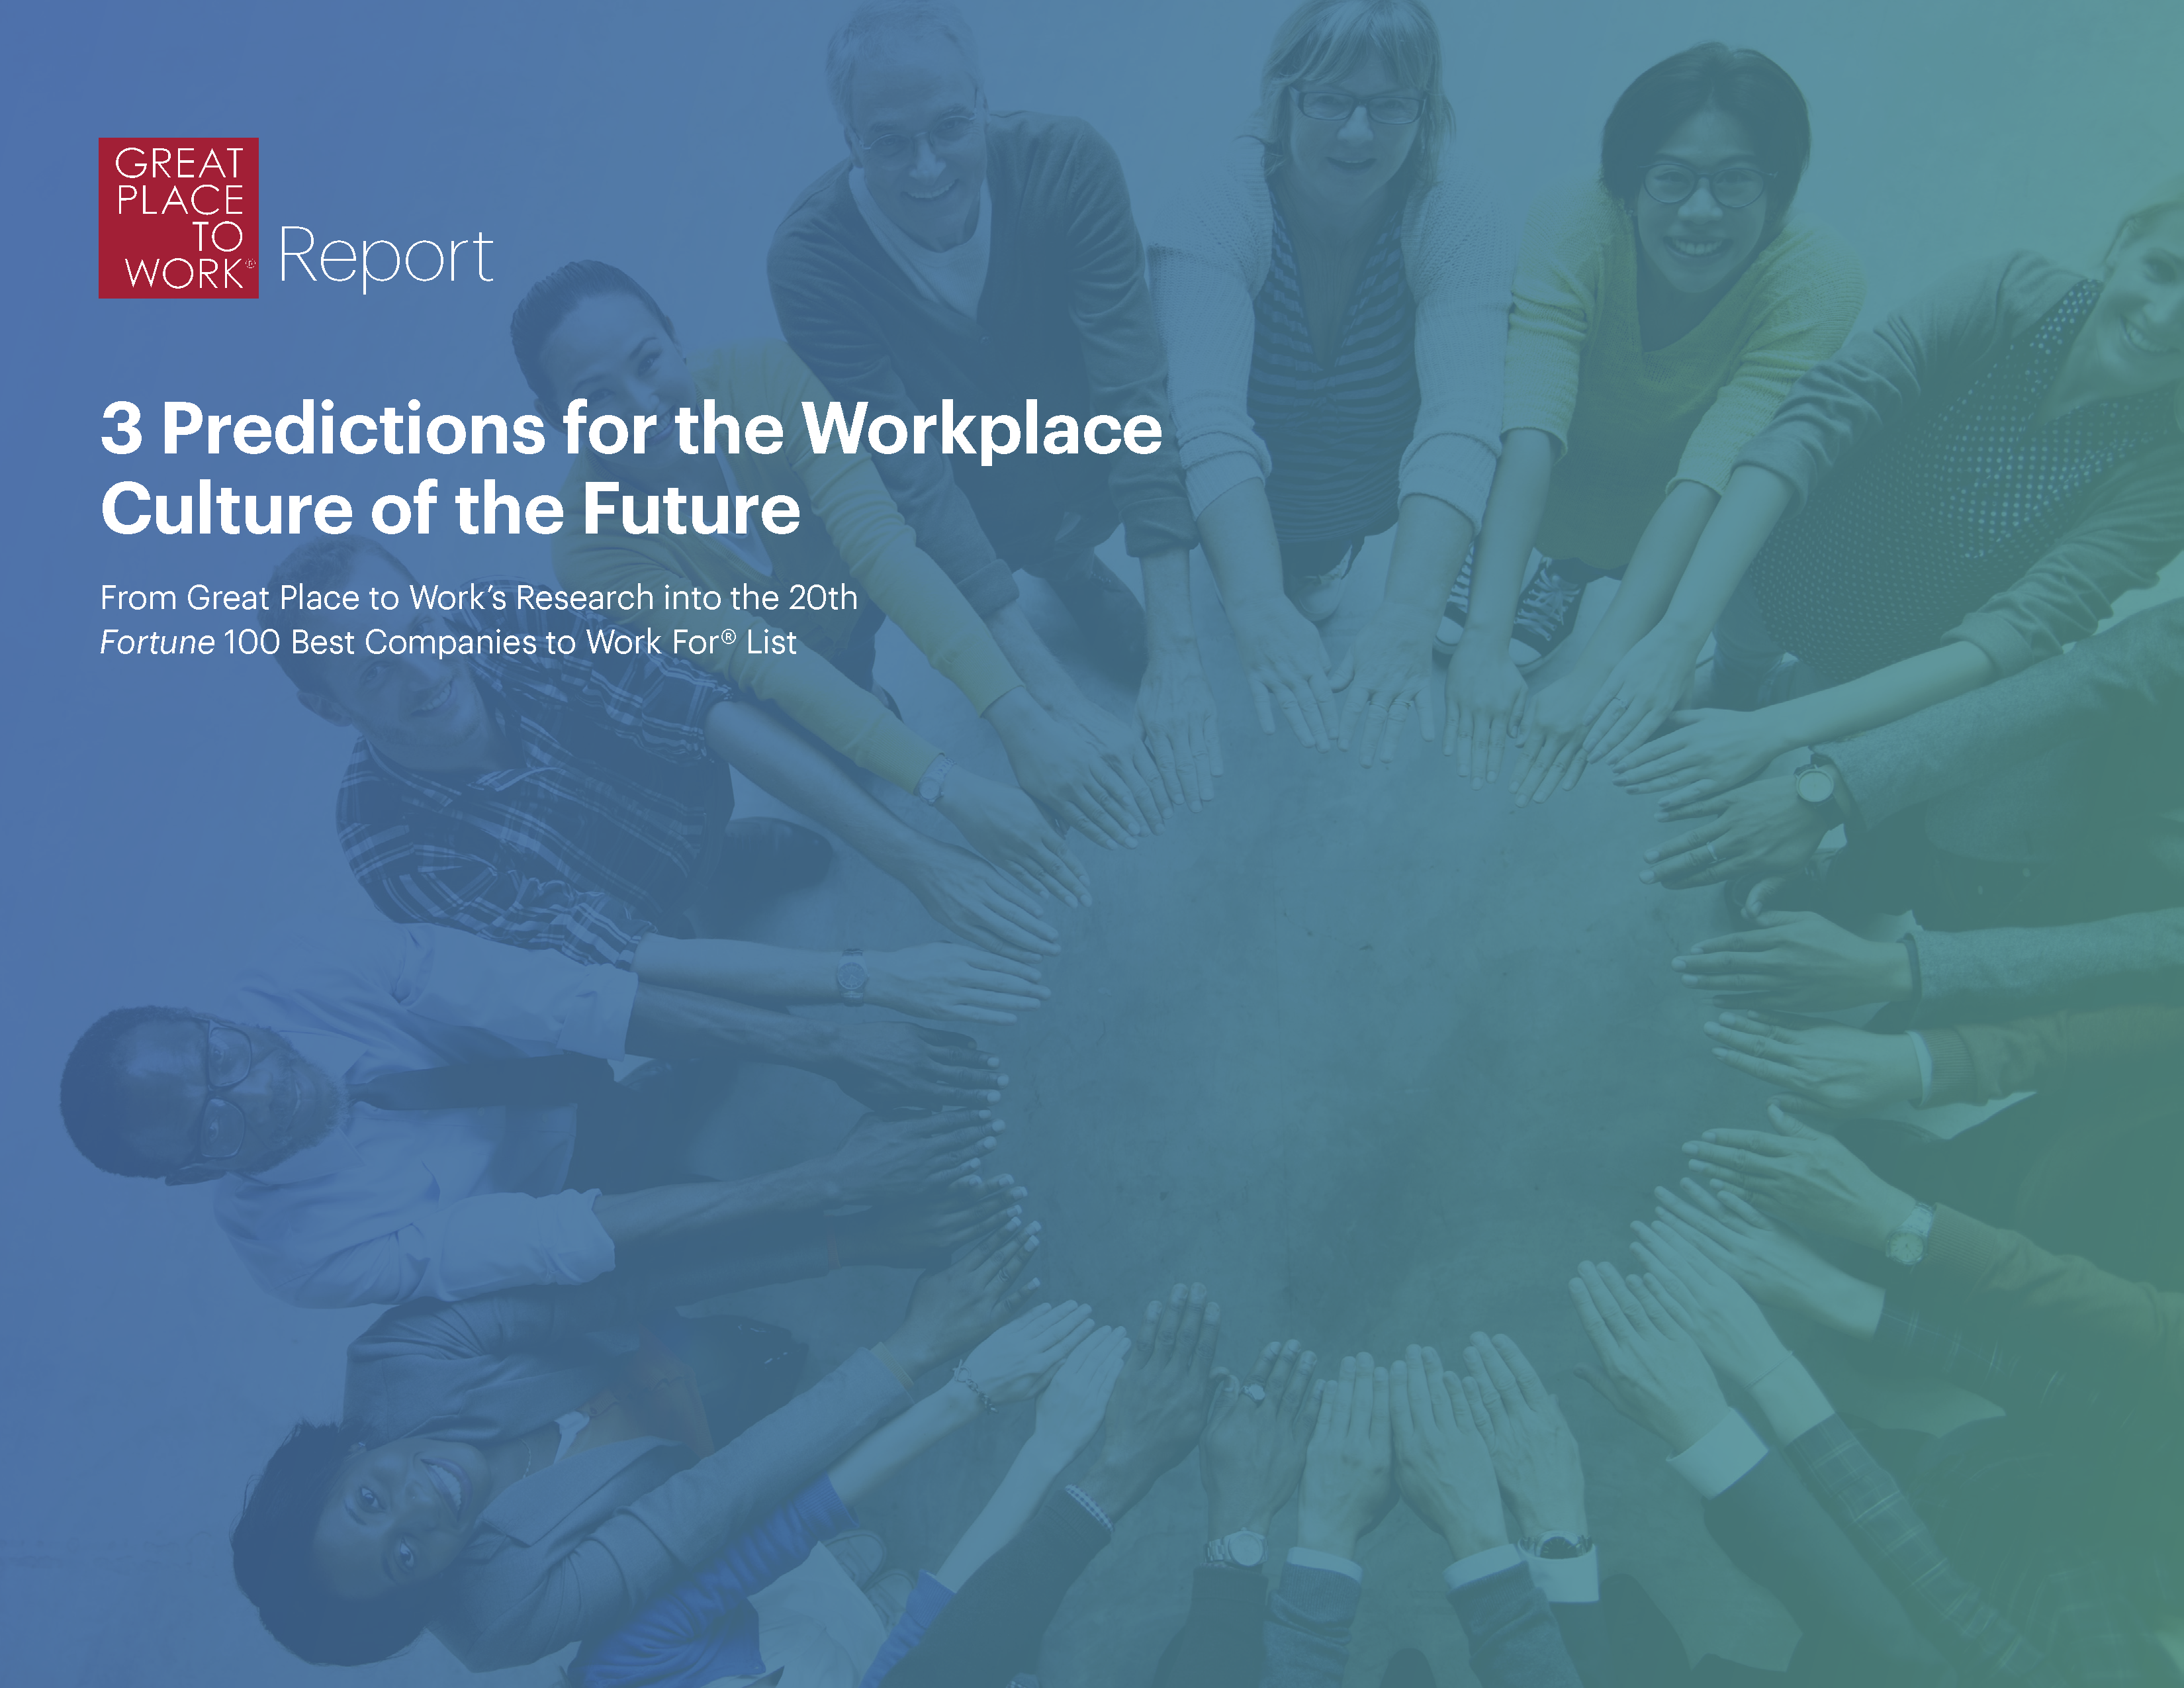 3 predictions for the Workplace Culture of the future